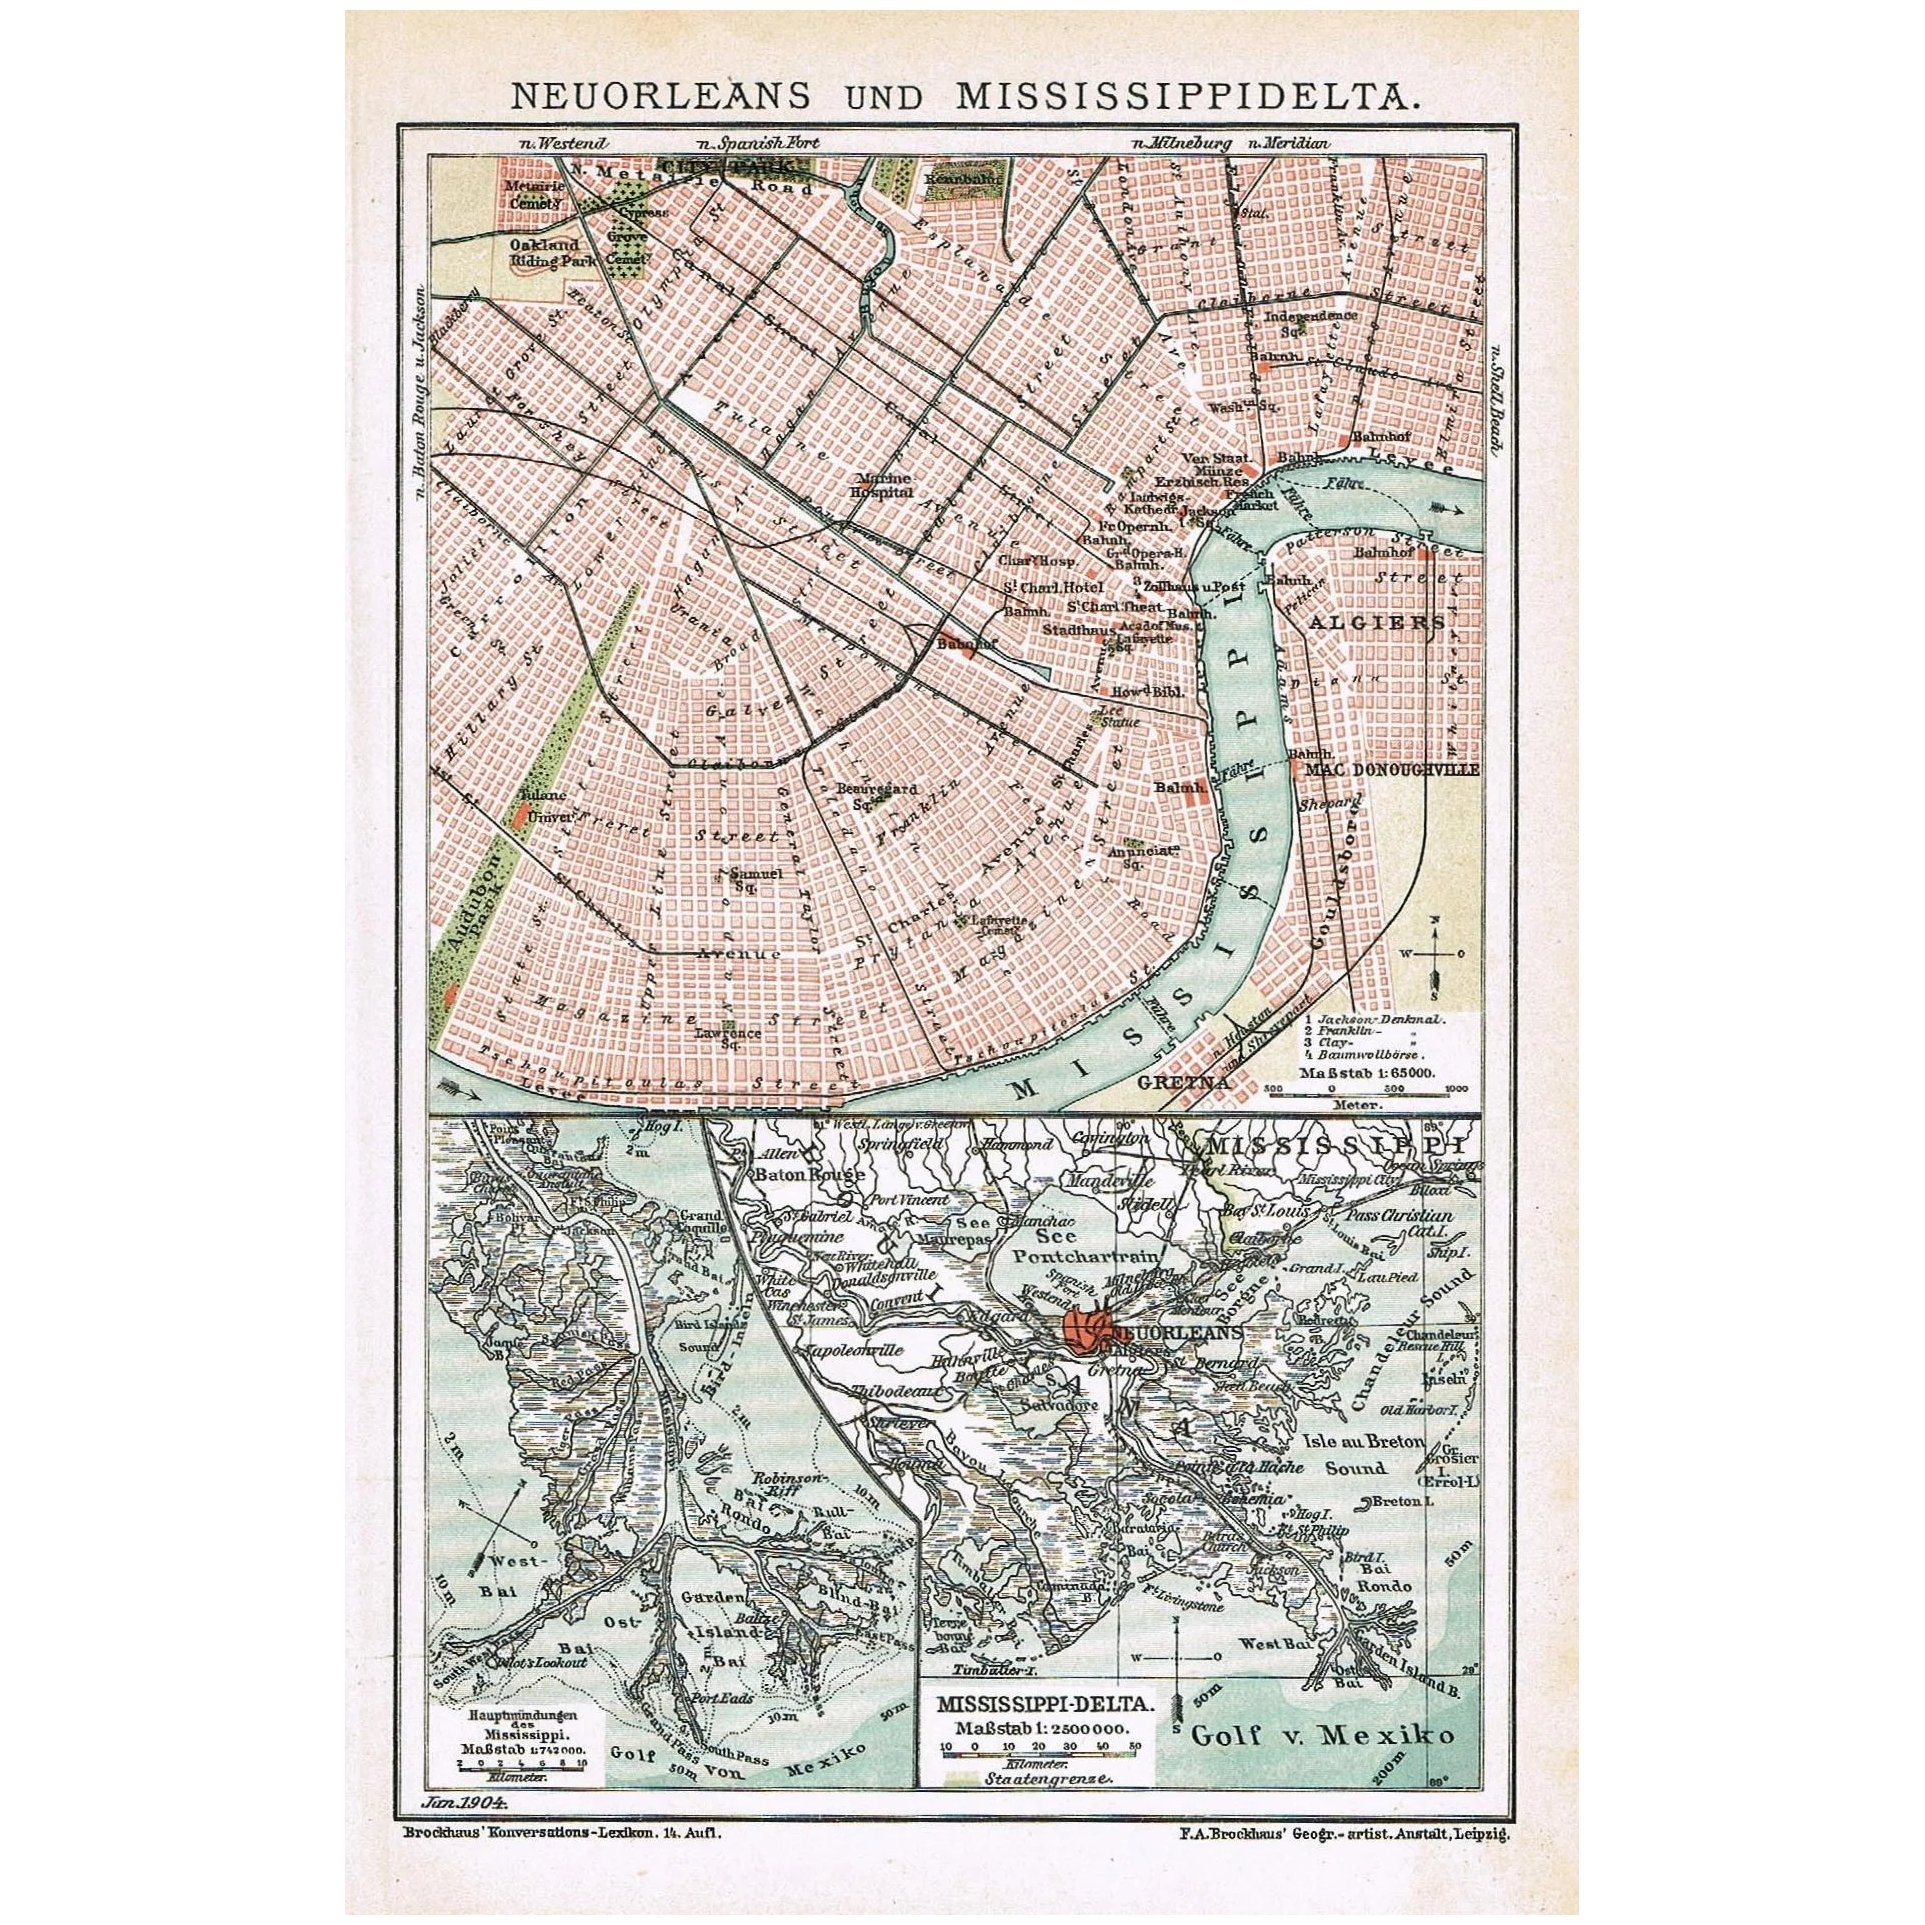 New Orleans and Mississippi-Delta. Old map from 1899 on new orleans cruise port, map of san diego port, map of port of new york, map of beaumont port, map of port hudson battle, map of dallas texas, map of disney world orlando, map of hamburg port, map of mississippi gulf coast, map of san pedro port, map port orleans disney room, map of port of la lb, map of galveston port, map port orleans french quarter garden view,